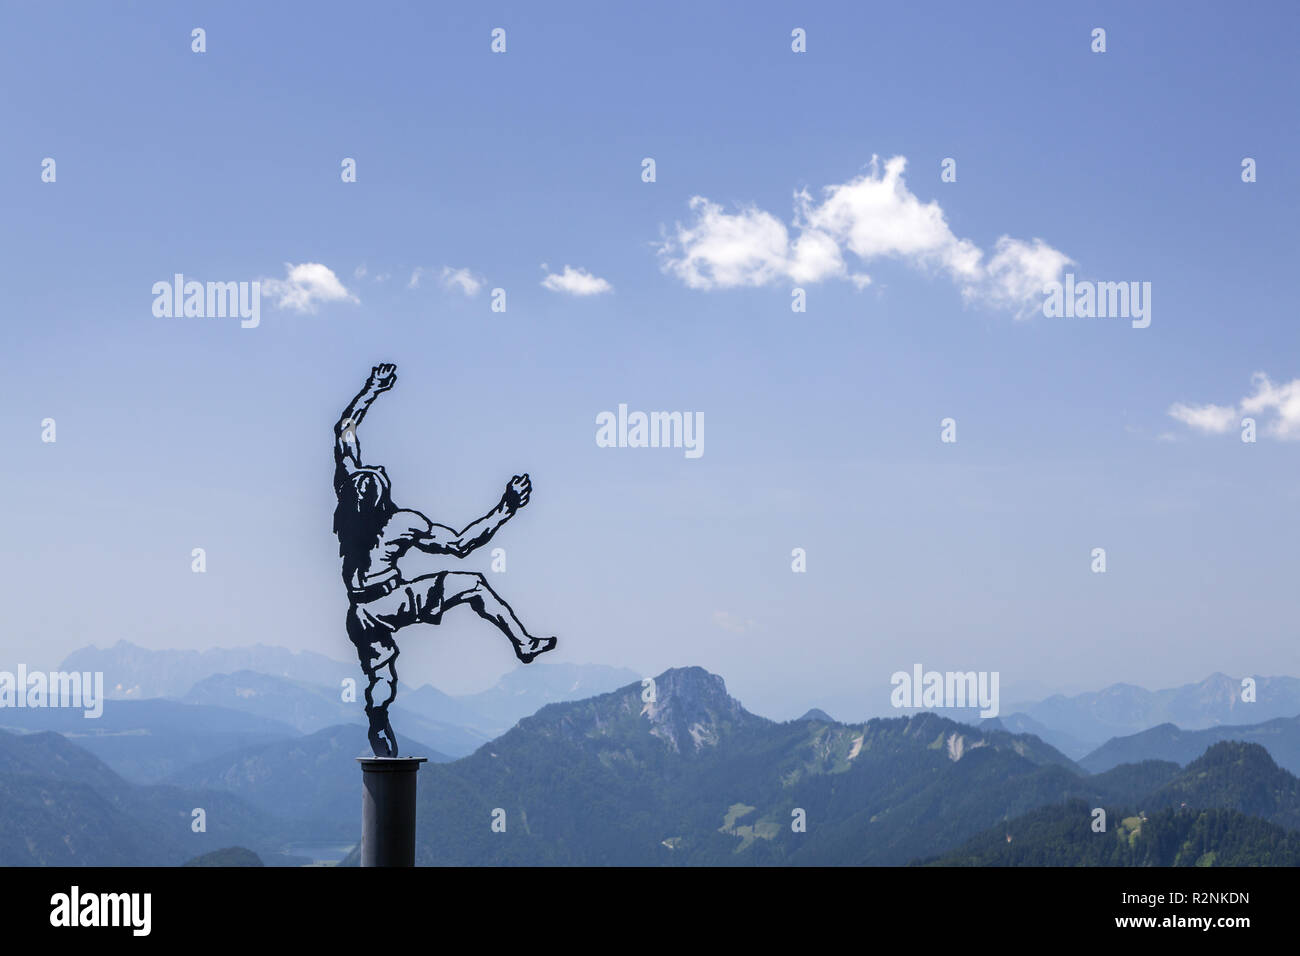 Artwork Himmelskletterer from Angerer the Younger one on the Rauschberg, Ruhpolding, Chiemgau Alps, Chiemgau, Upper Bavaria, Bavaria, Southern Germany, Germany, Europe - Stock Image